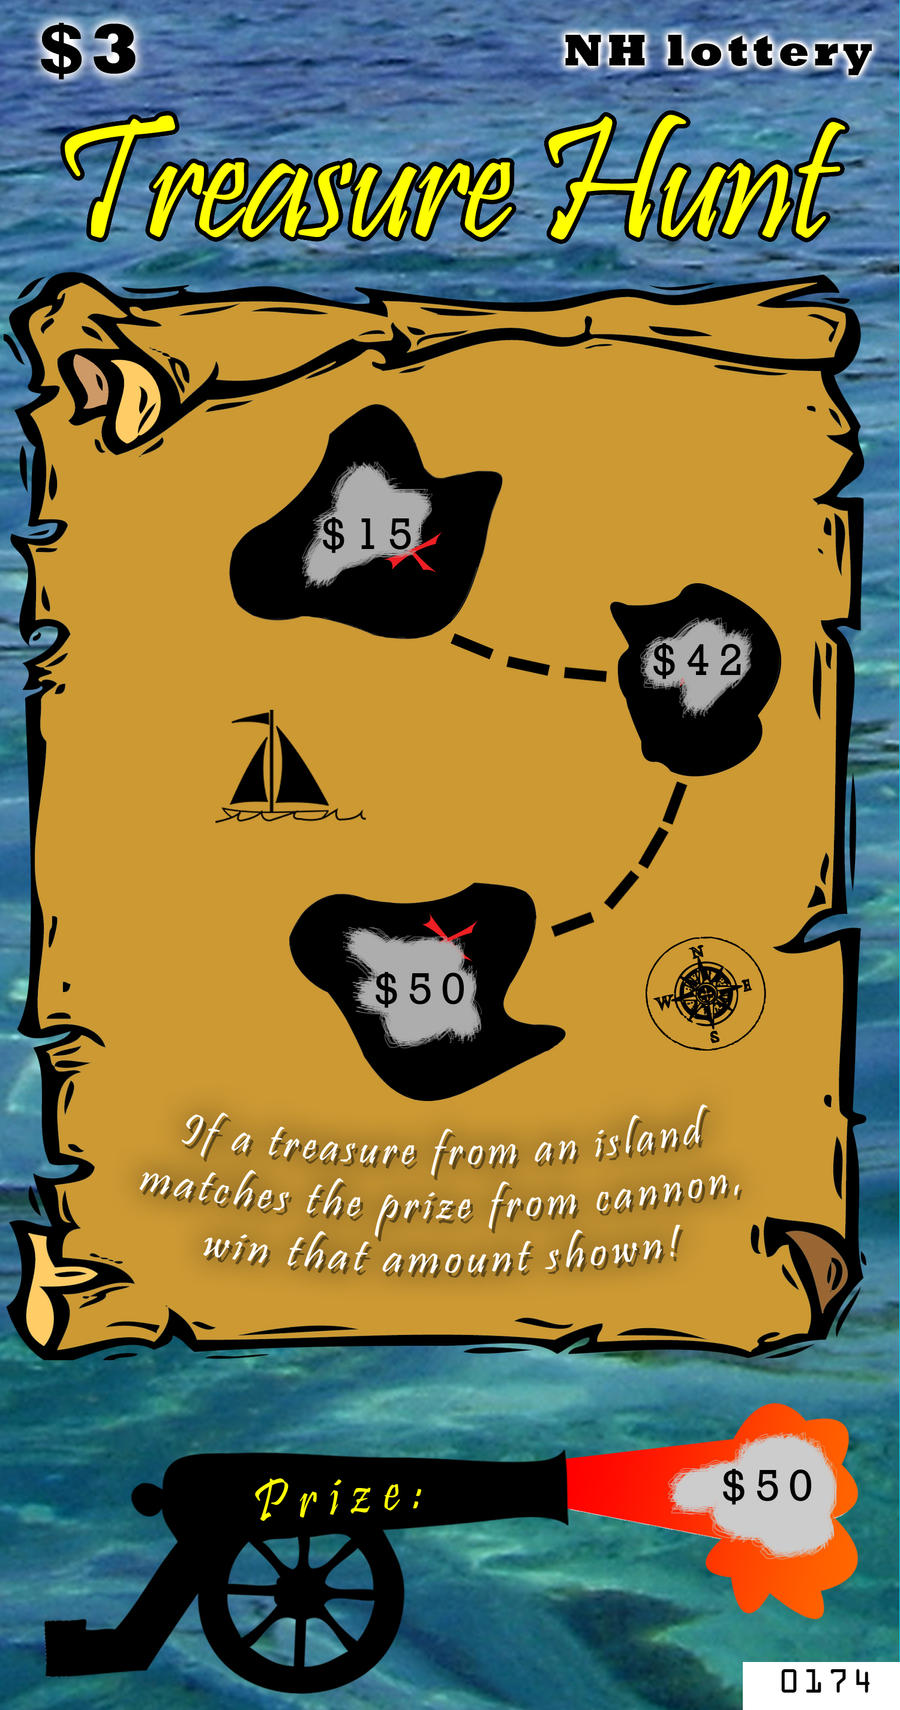 pirate loot lottery ticket design by amthetruth on pirate loot lottery ticket design by 1amthetruth